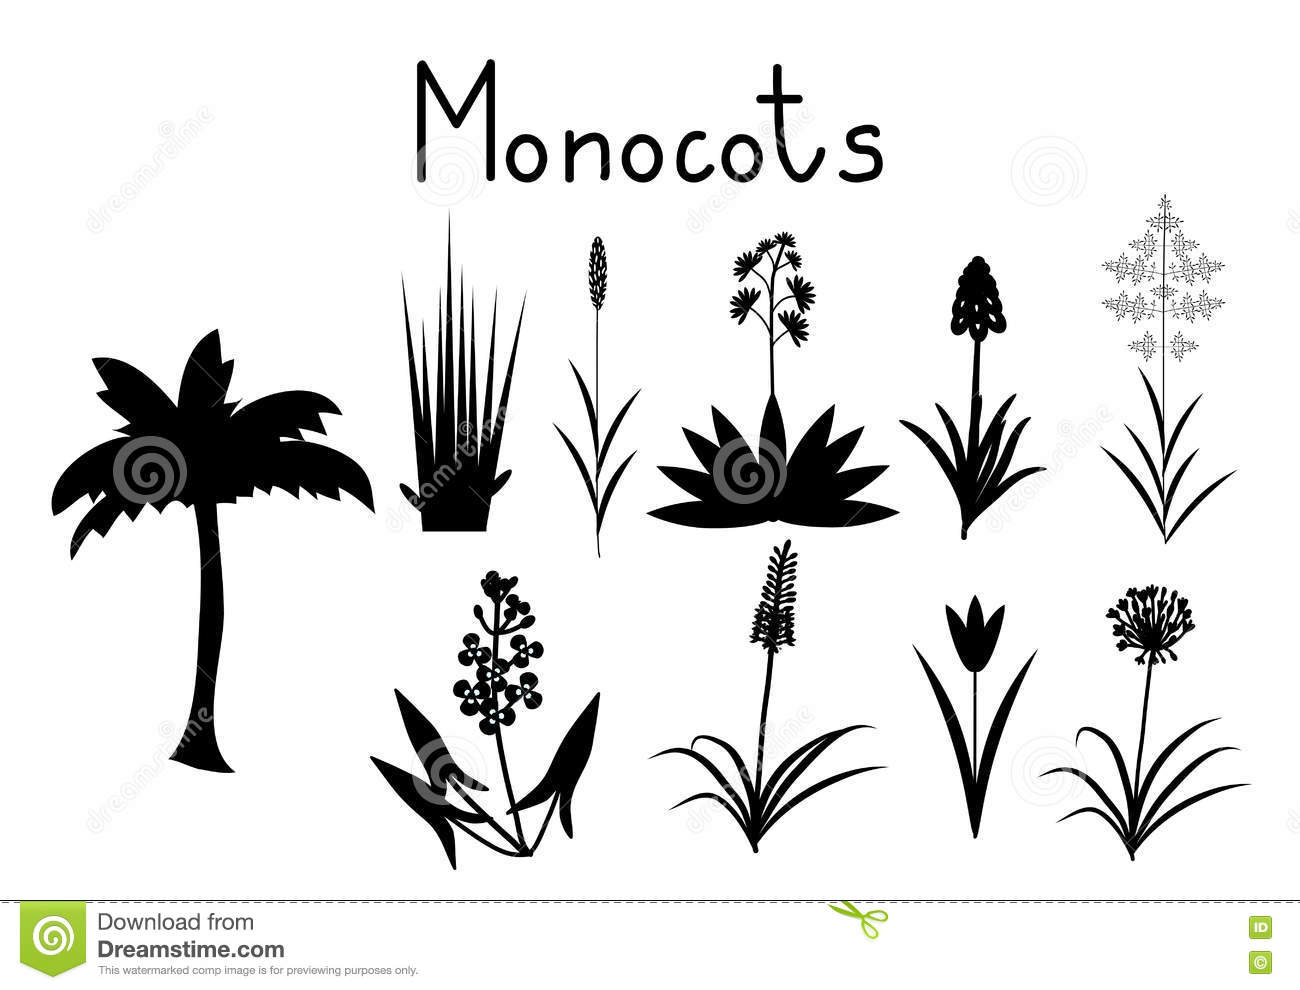 monocots cartoons illustrations amp vector stock images